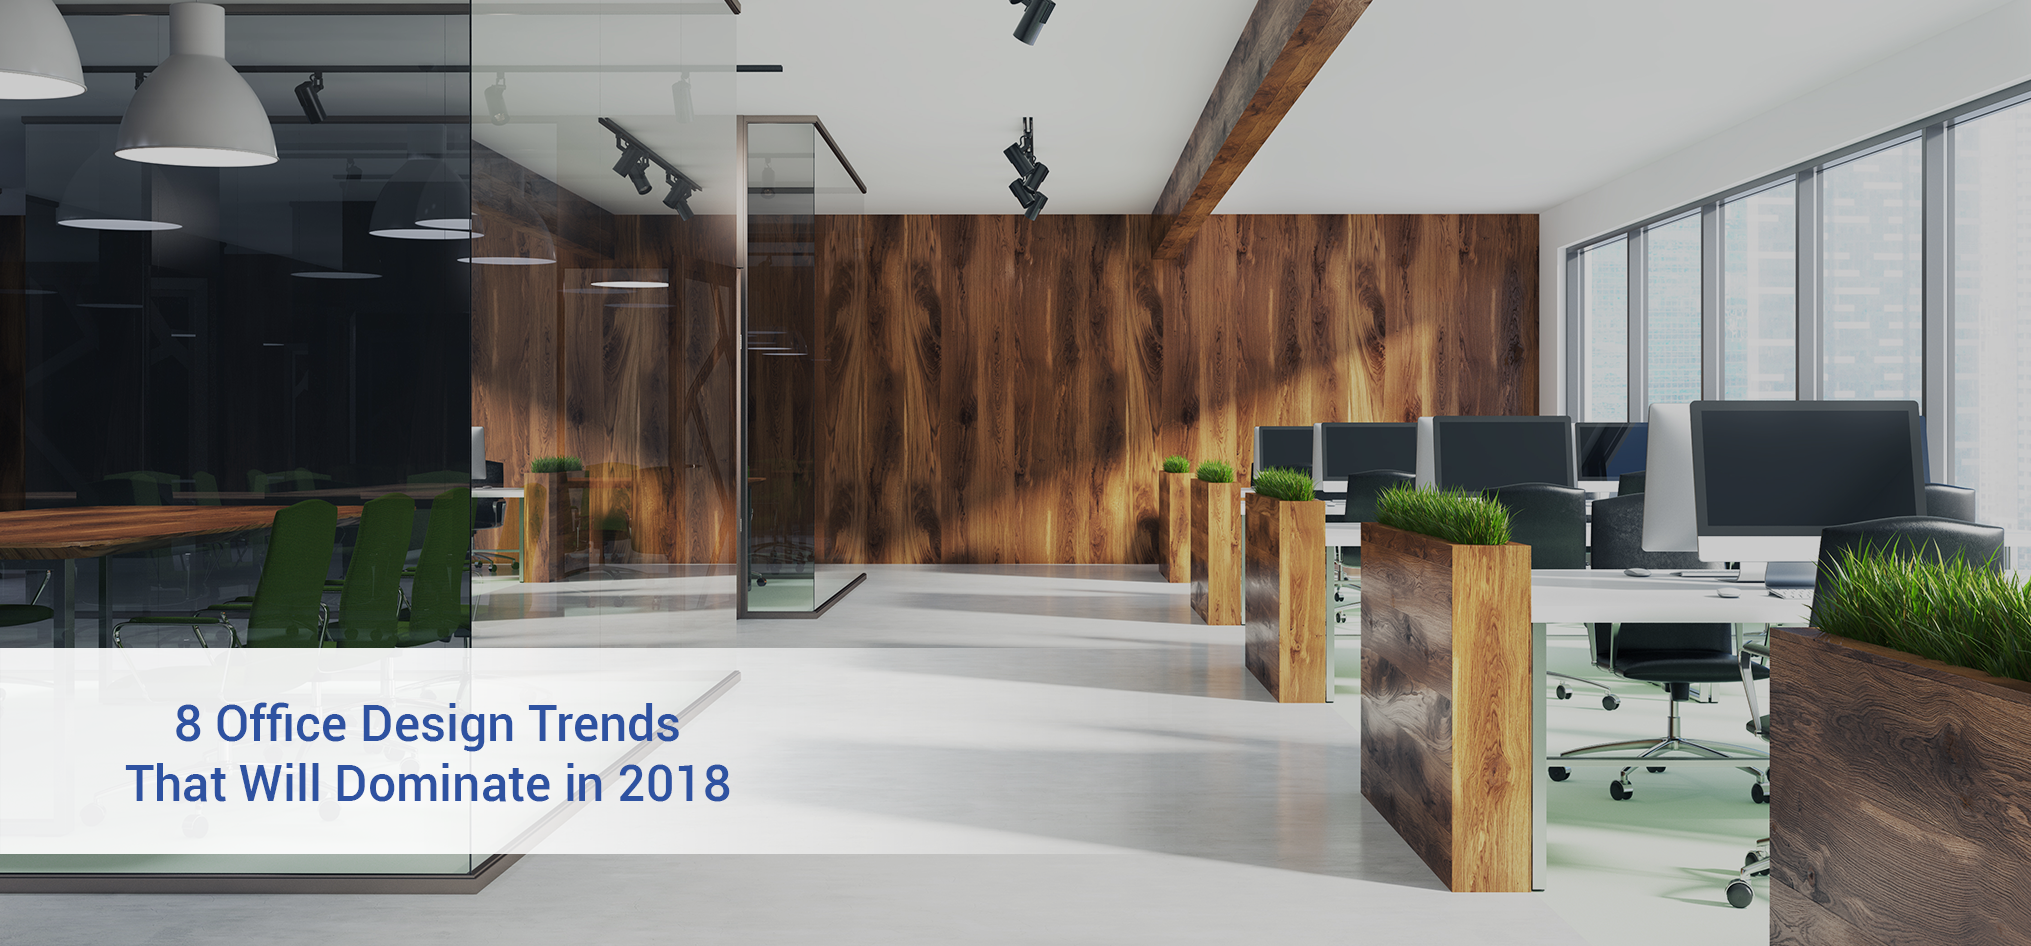 8 Office Design Trends That Will Dominate In 2018 Figari Group